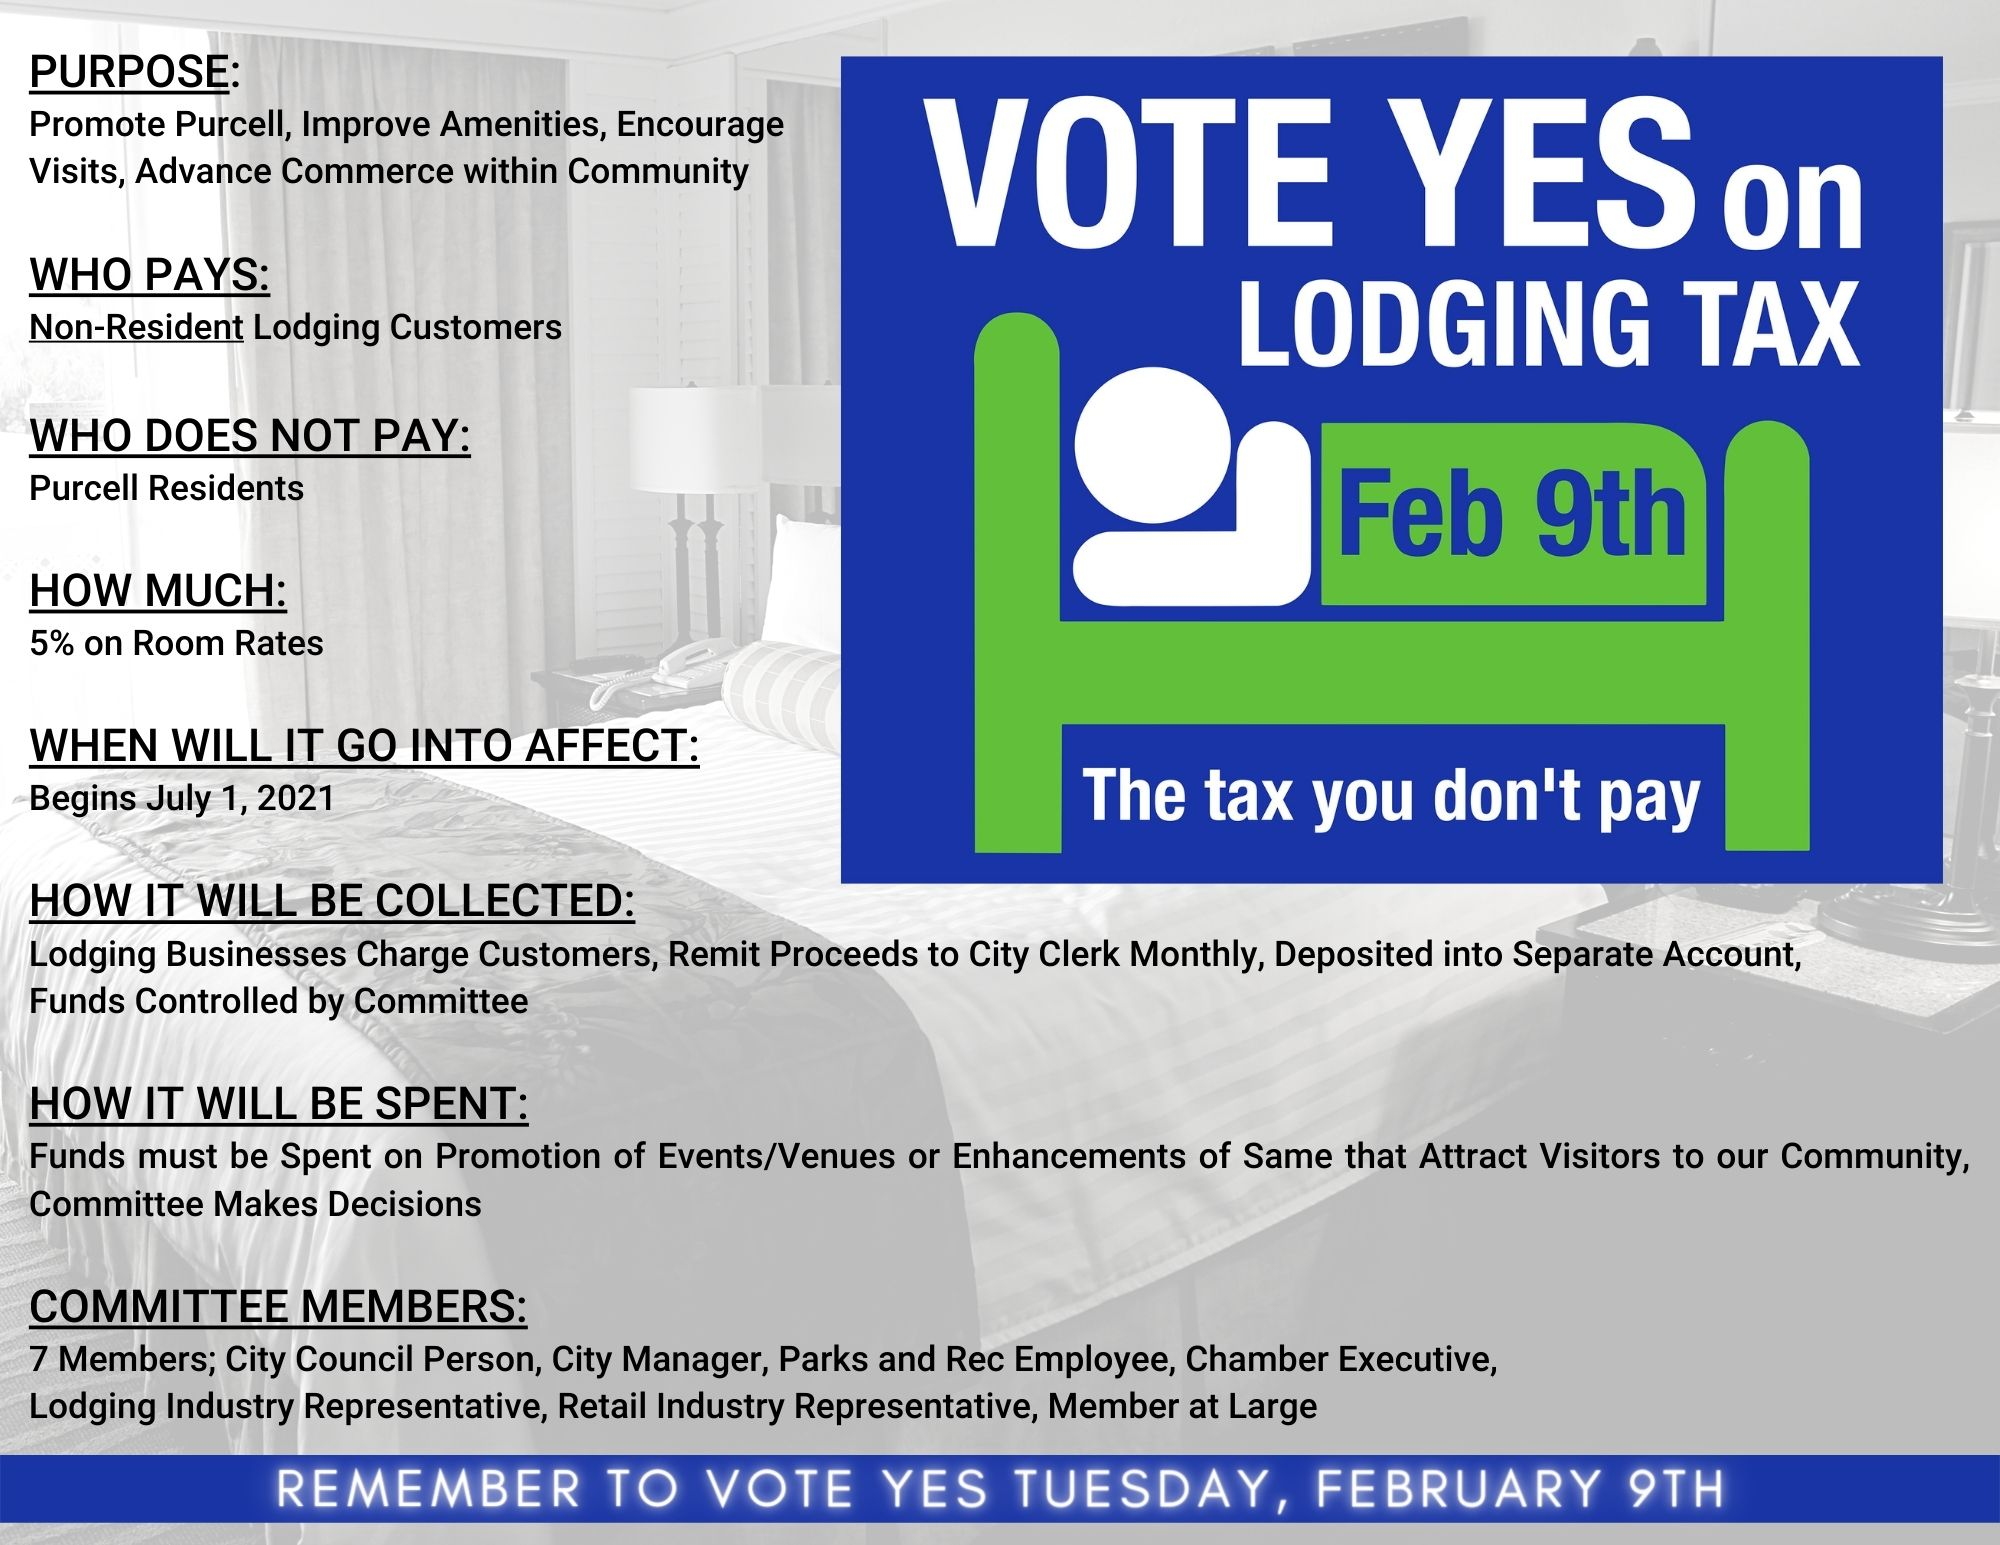 Vote-Yes-on-Lodging-Tax-Flyer.jpg